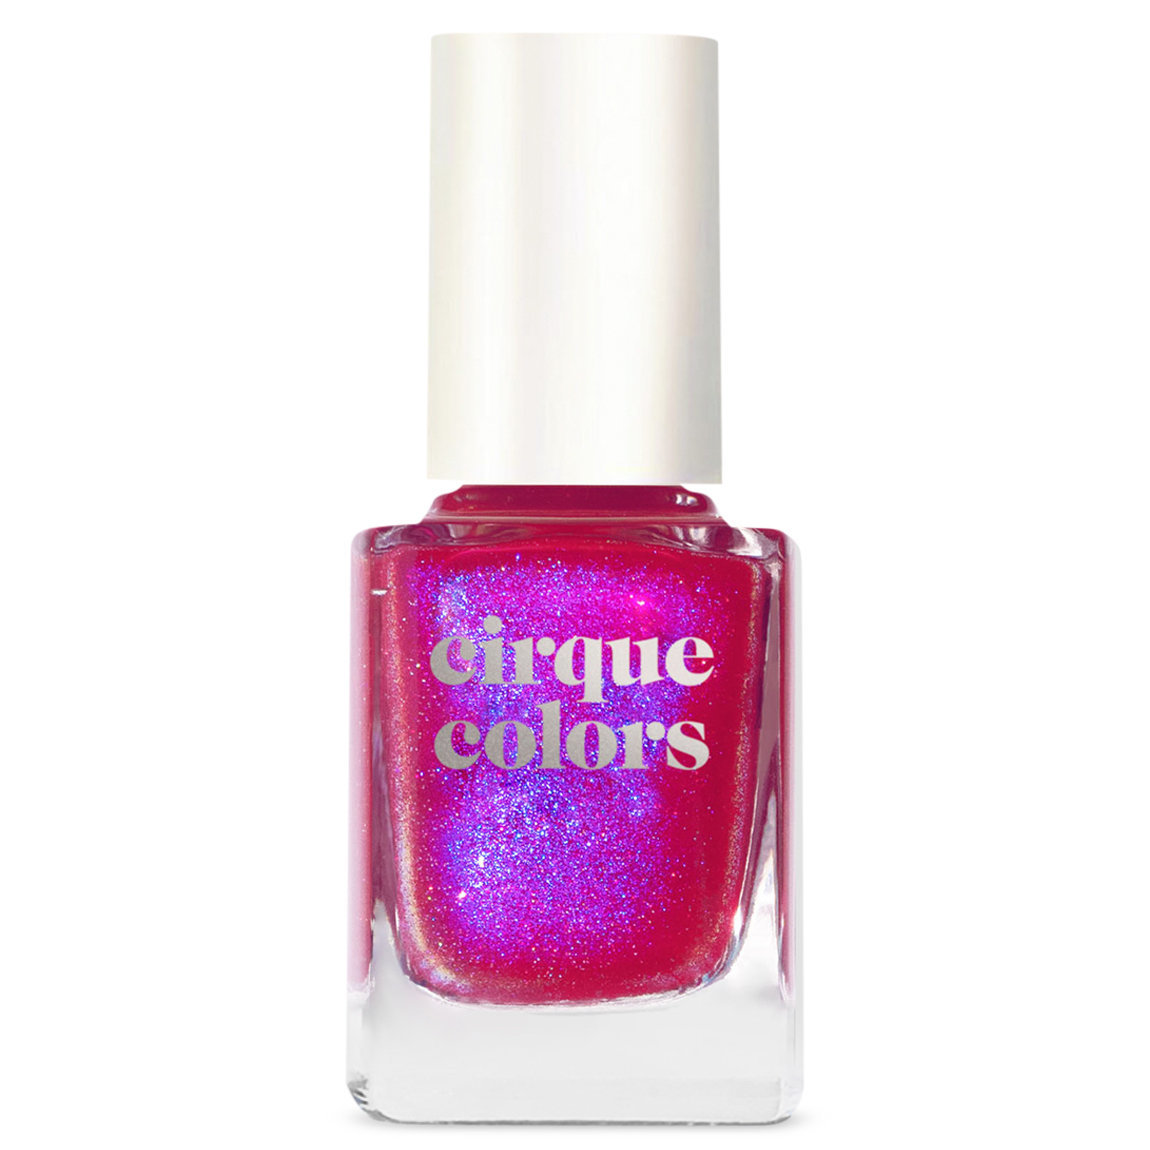 Cirque Colors Shimmer Nail Polish Wild Berry West alternative view 1 - product swatch.